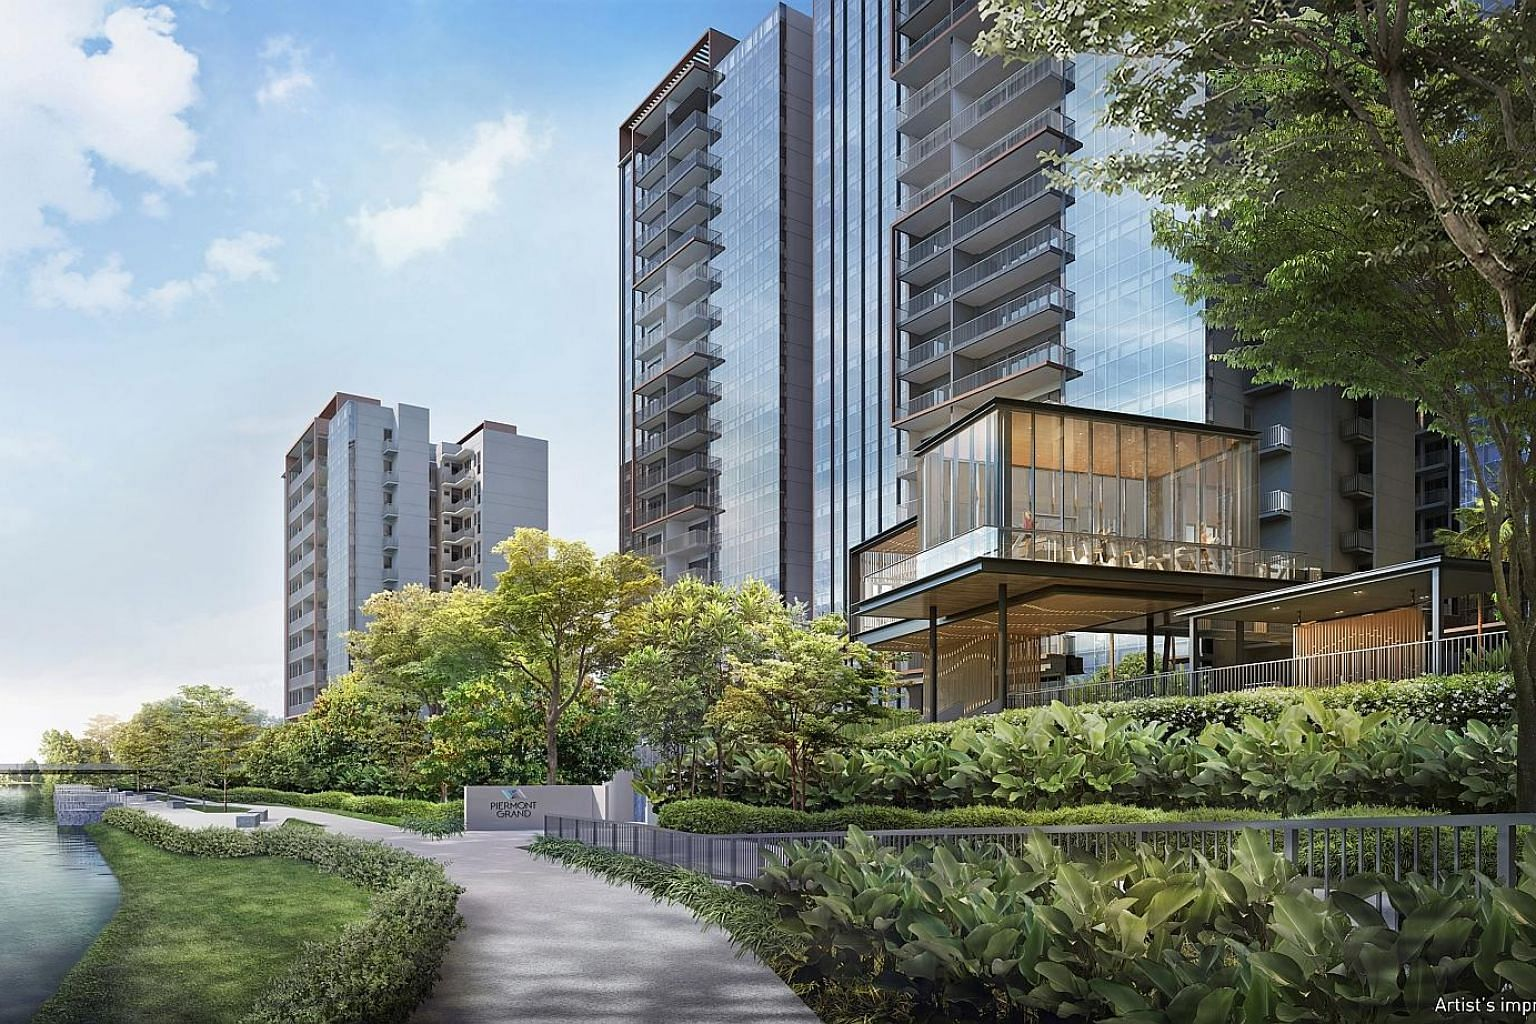 The 820-unit Piermont Grand offers a wide range of facilities spread across four zones, including a gymnasium, a 50m lap pool, a children's party room, tennis court and barbecue pavilions.